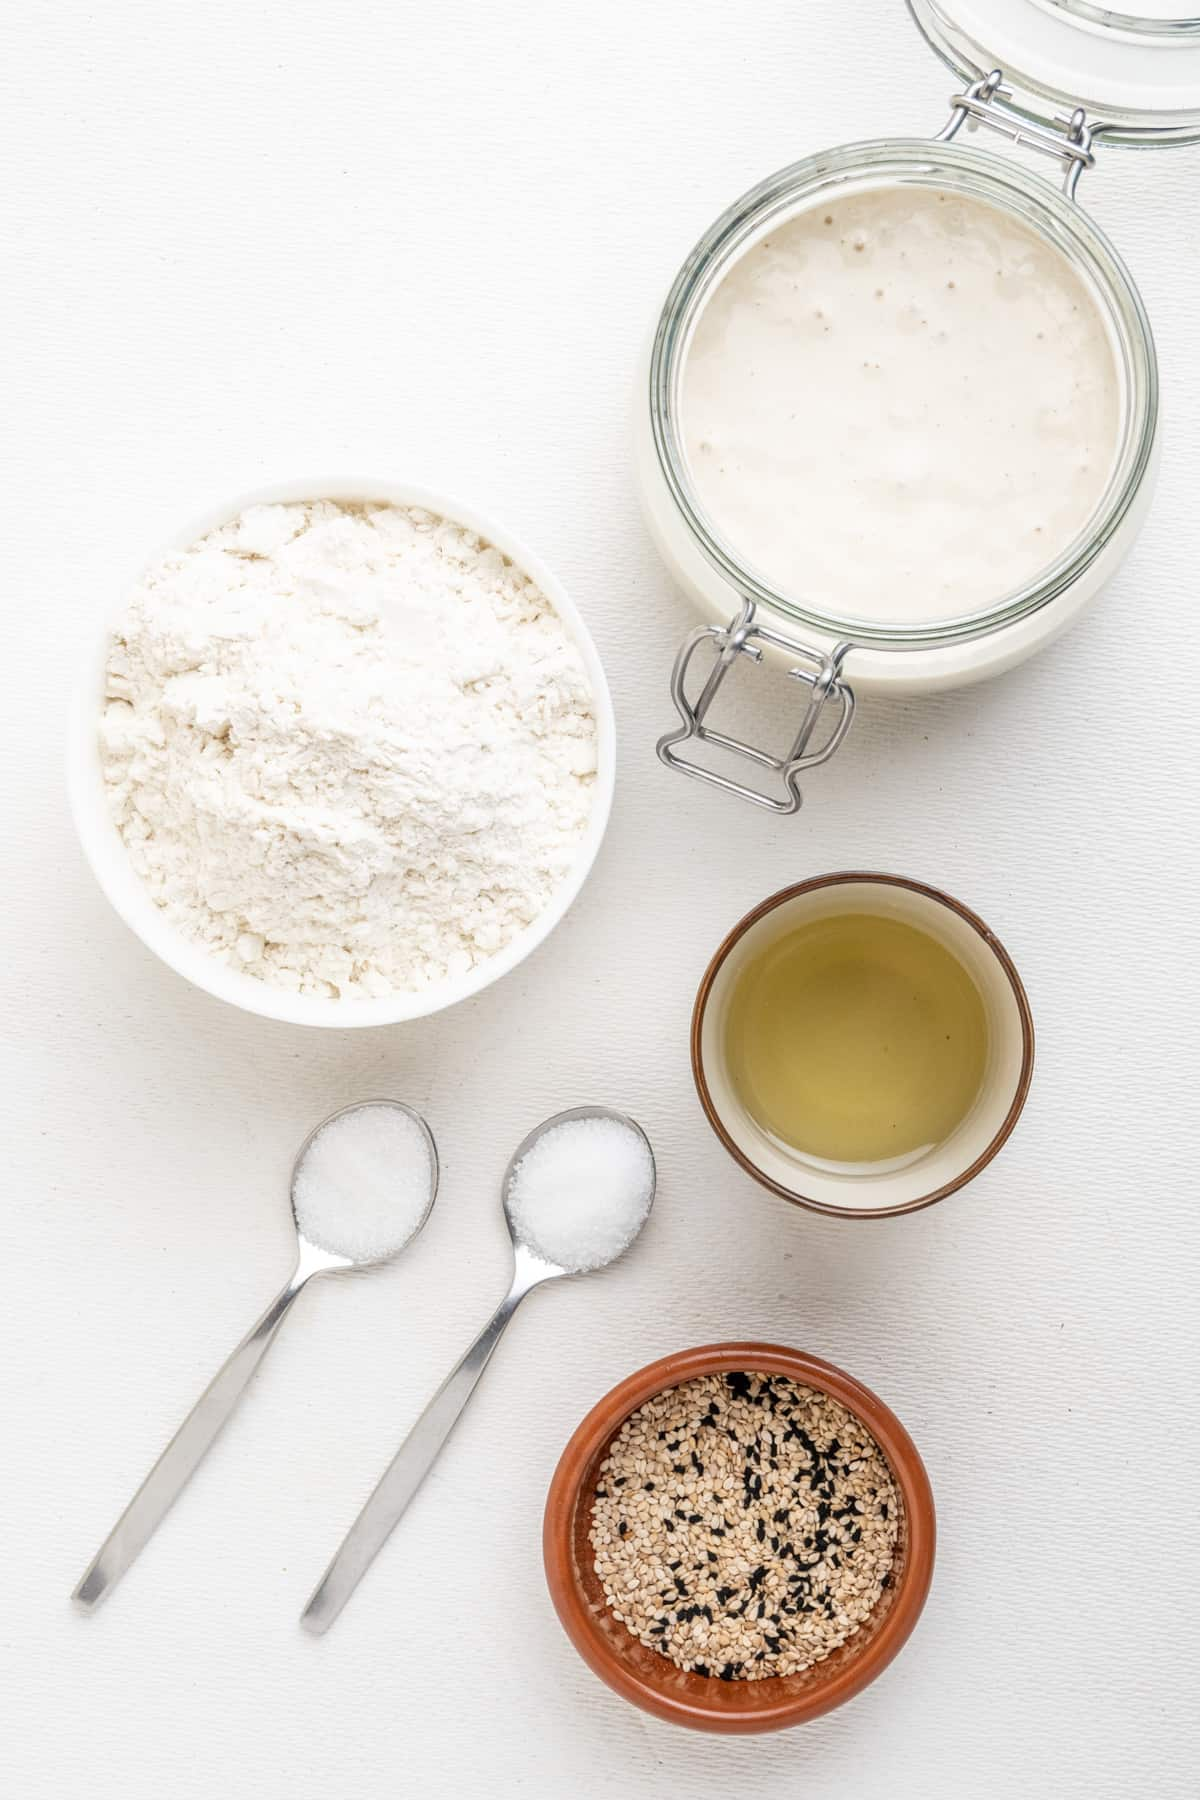 The ingredients on a white surface - sourdough discard, white flour, olive oil, salt, sugar and seeds.